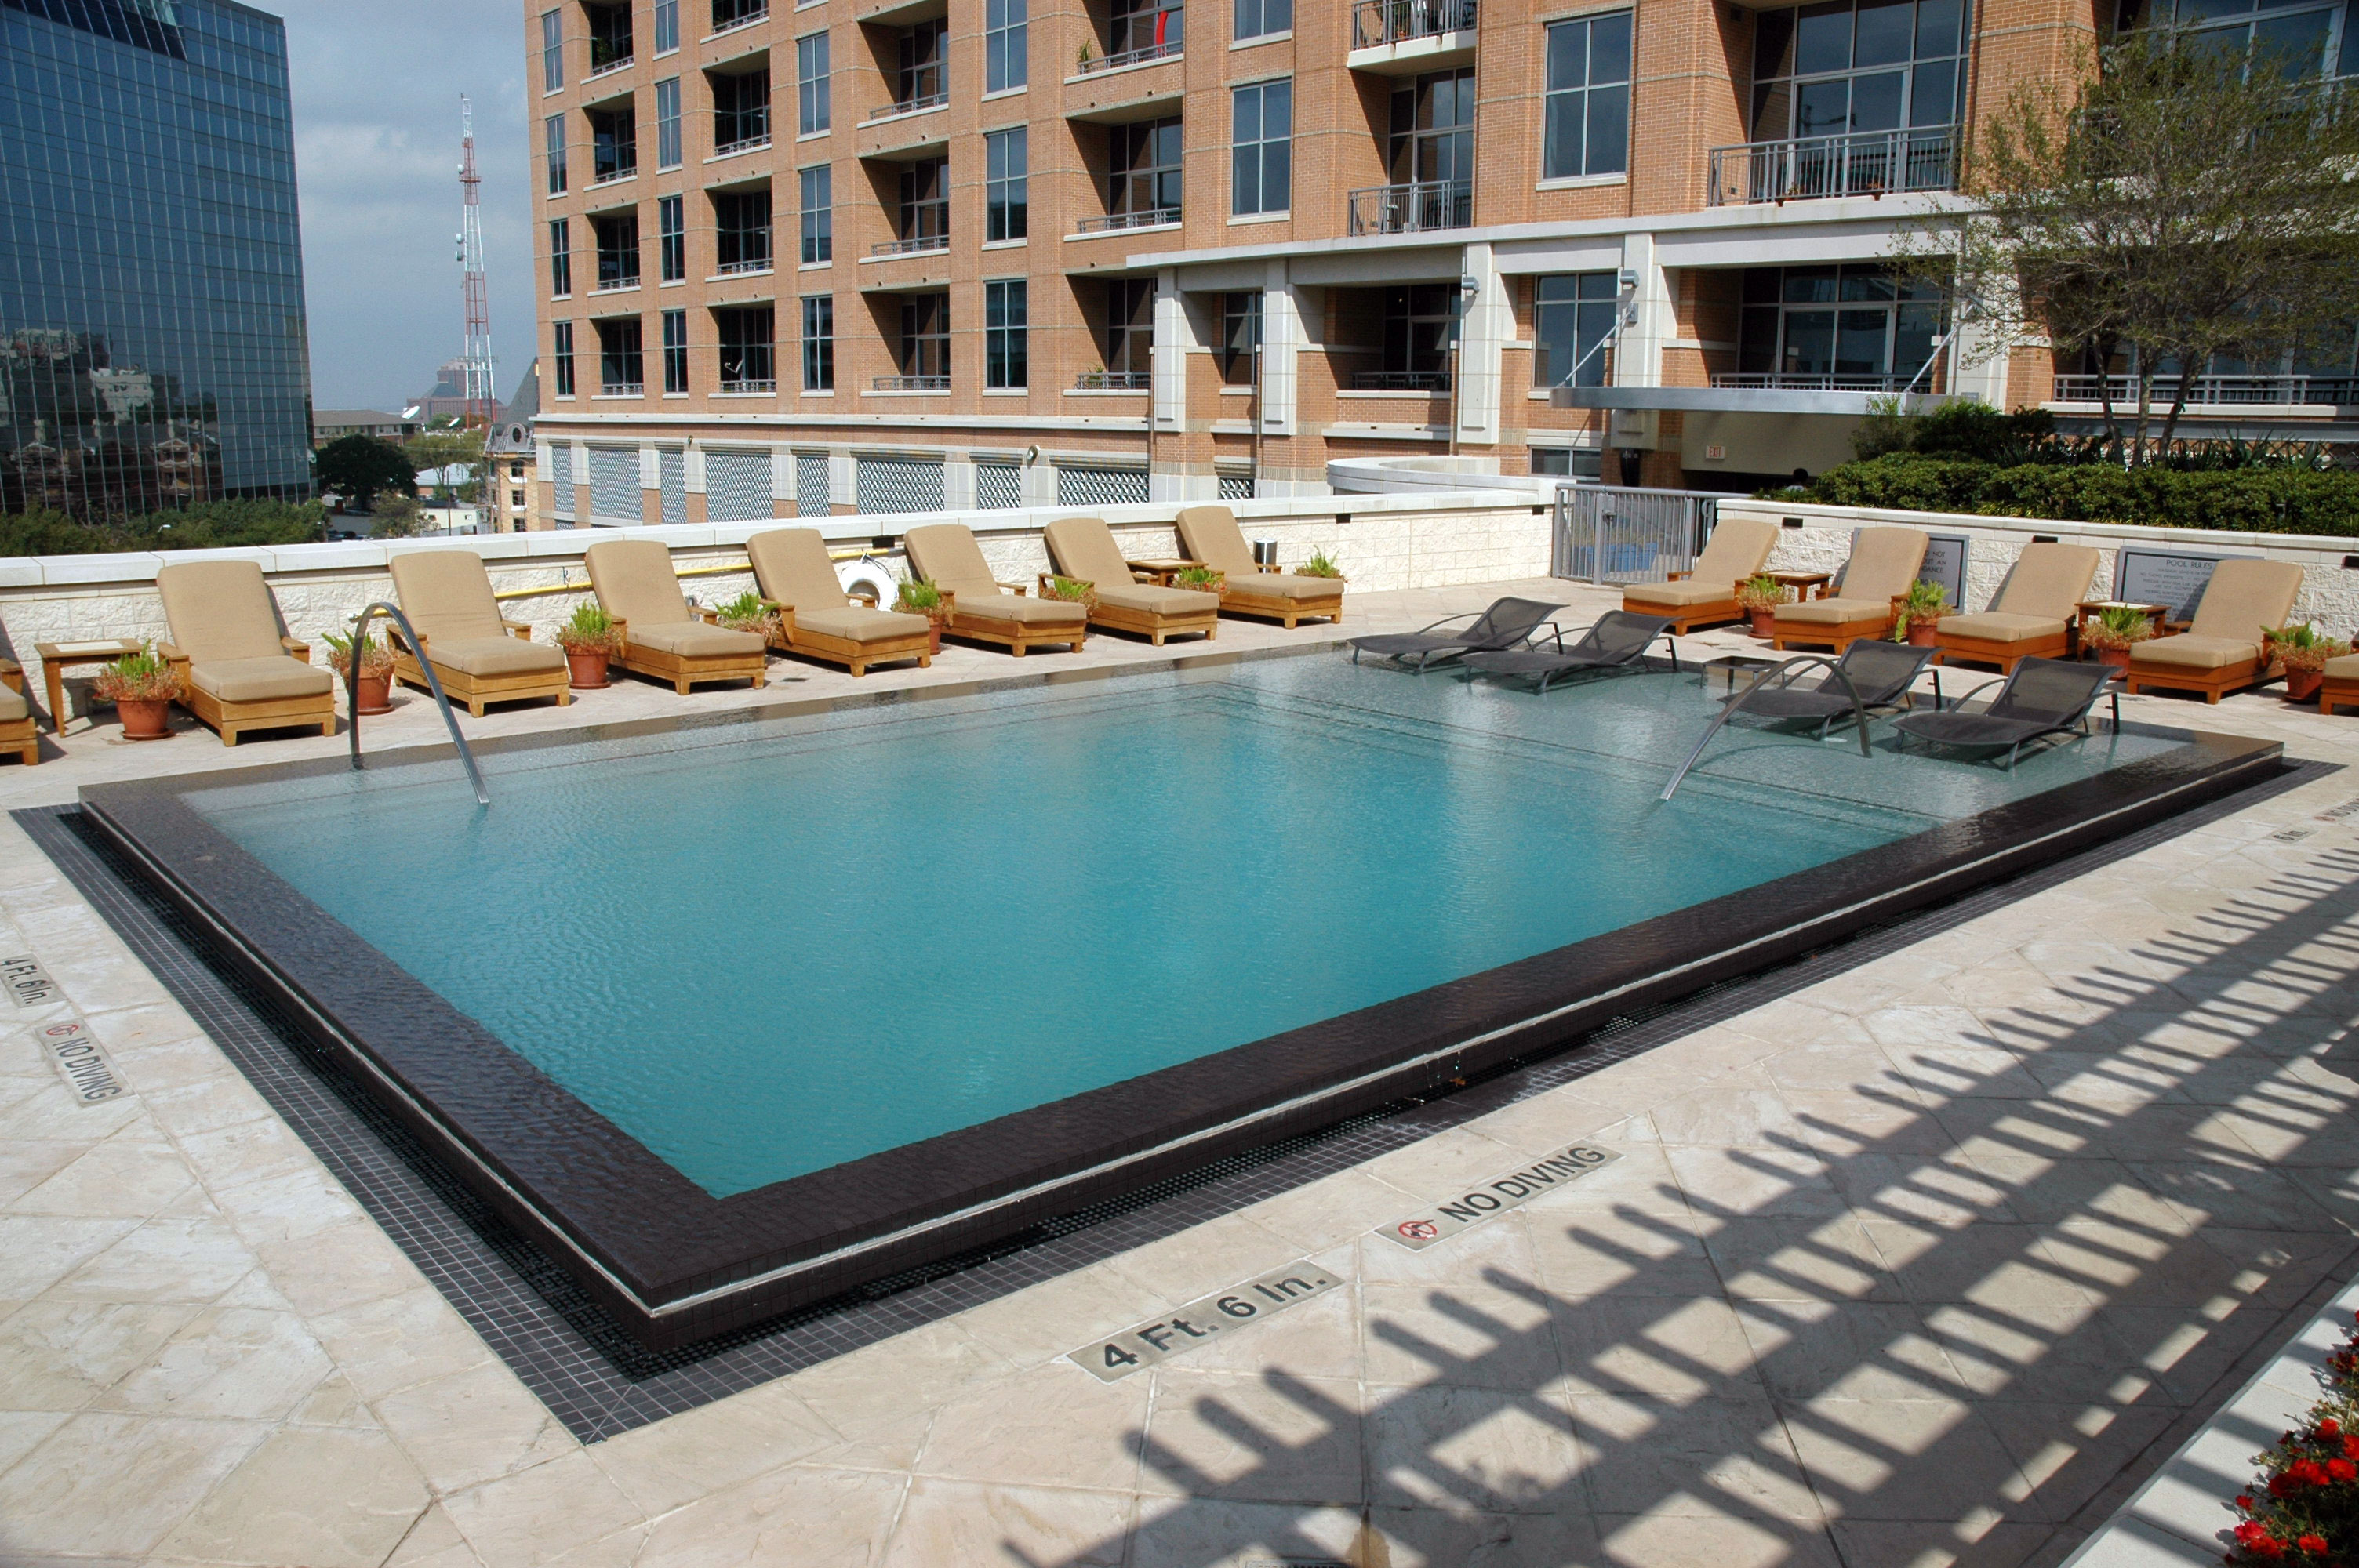 Commercial dallas swimming pools pool contractor for Commercial pools